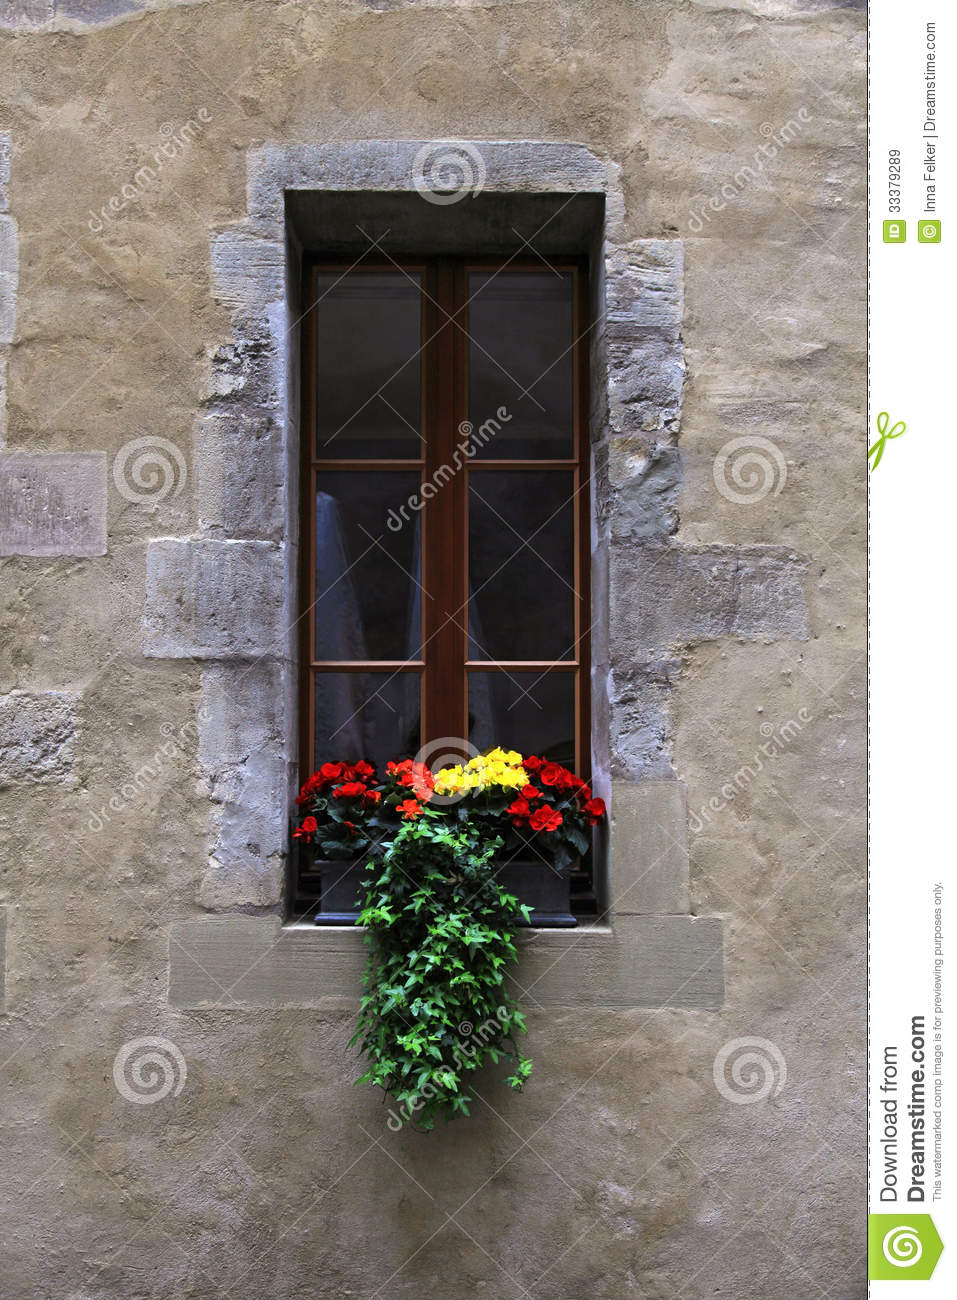 Vintage Window With Flowers And Window Box Royalty Free Stock Images  Image 33379289